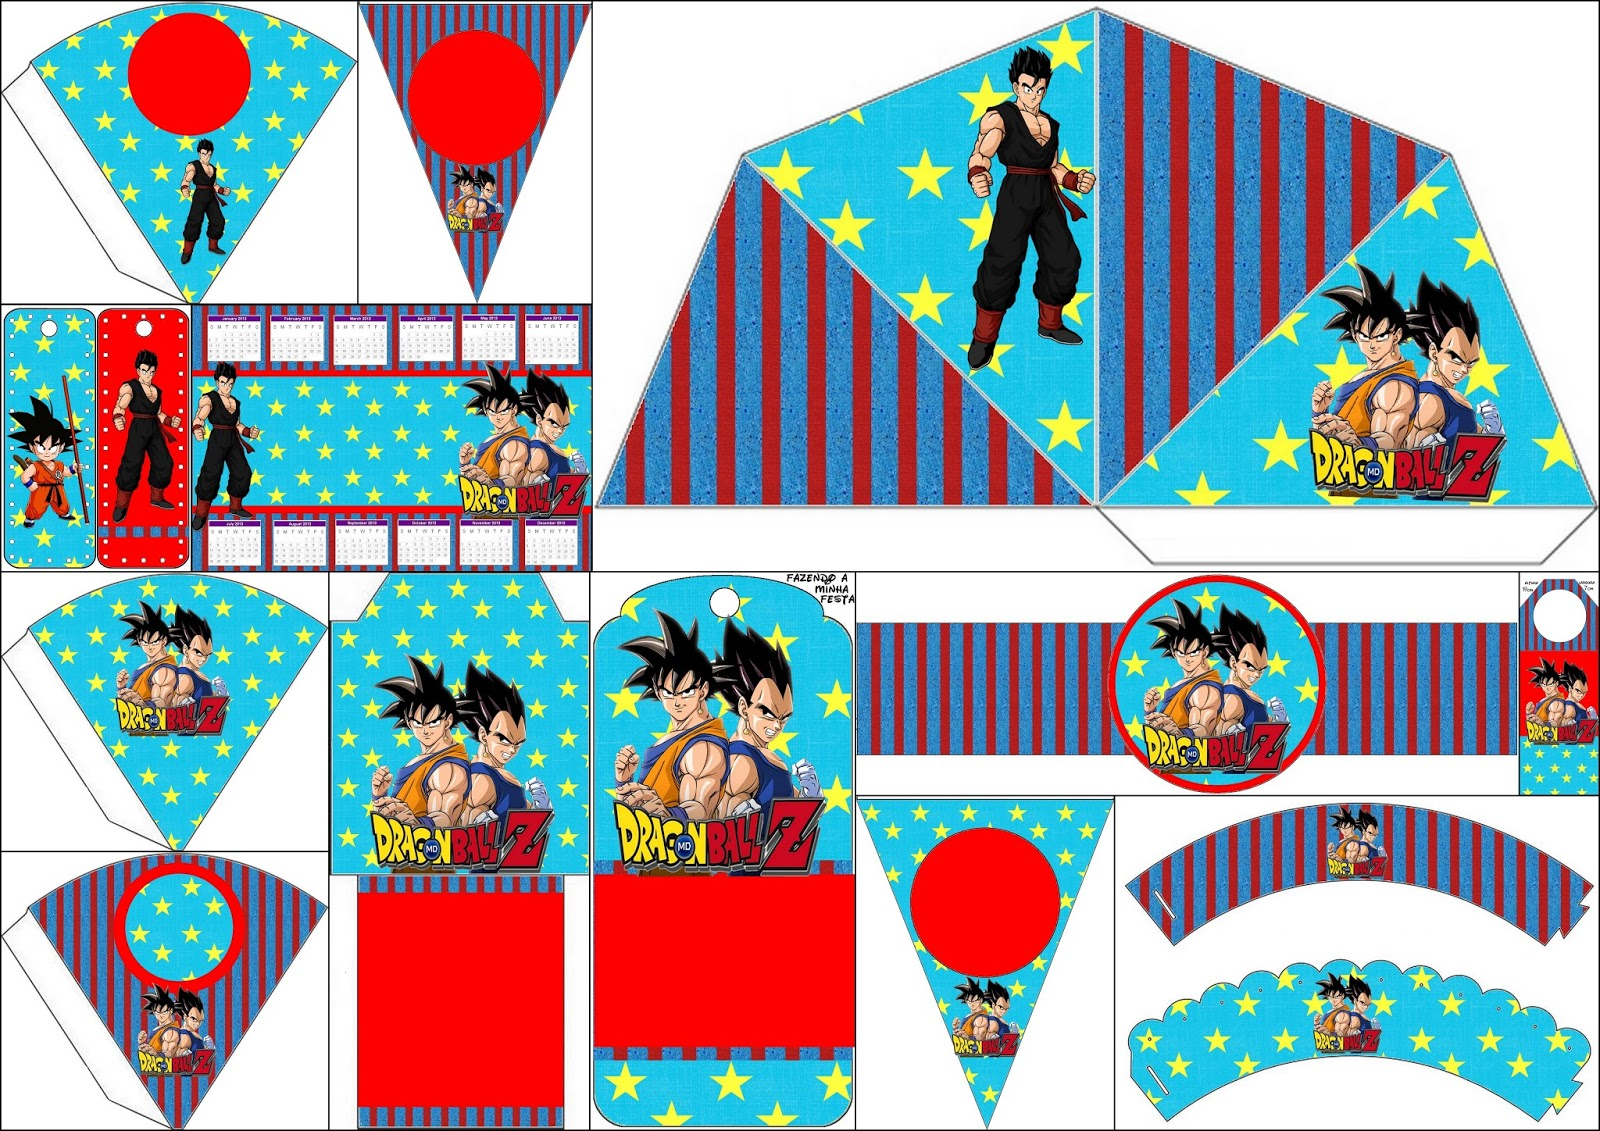 Dragon ball z free party printables oh my fiesta for geeks for Decoration dragon ball